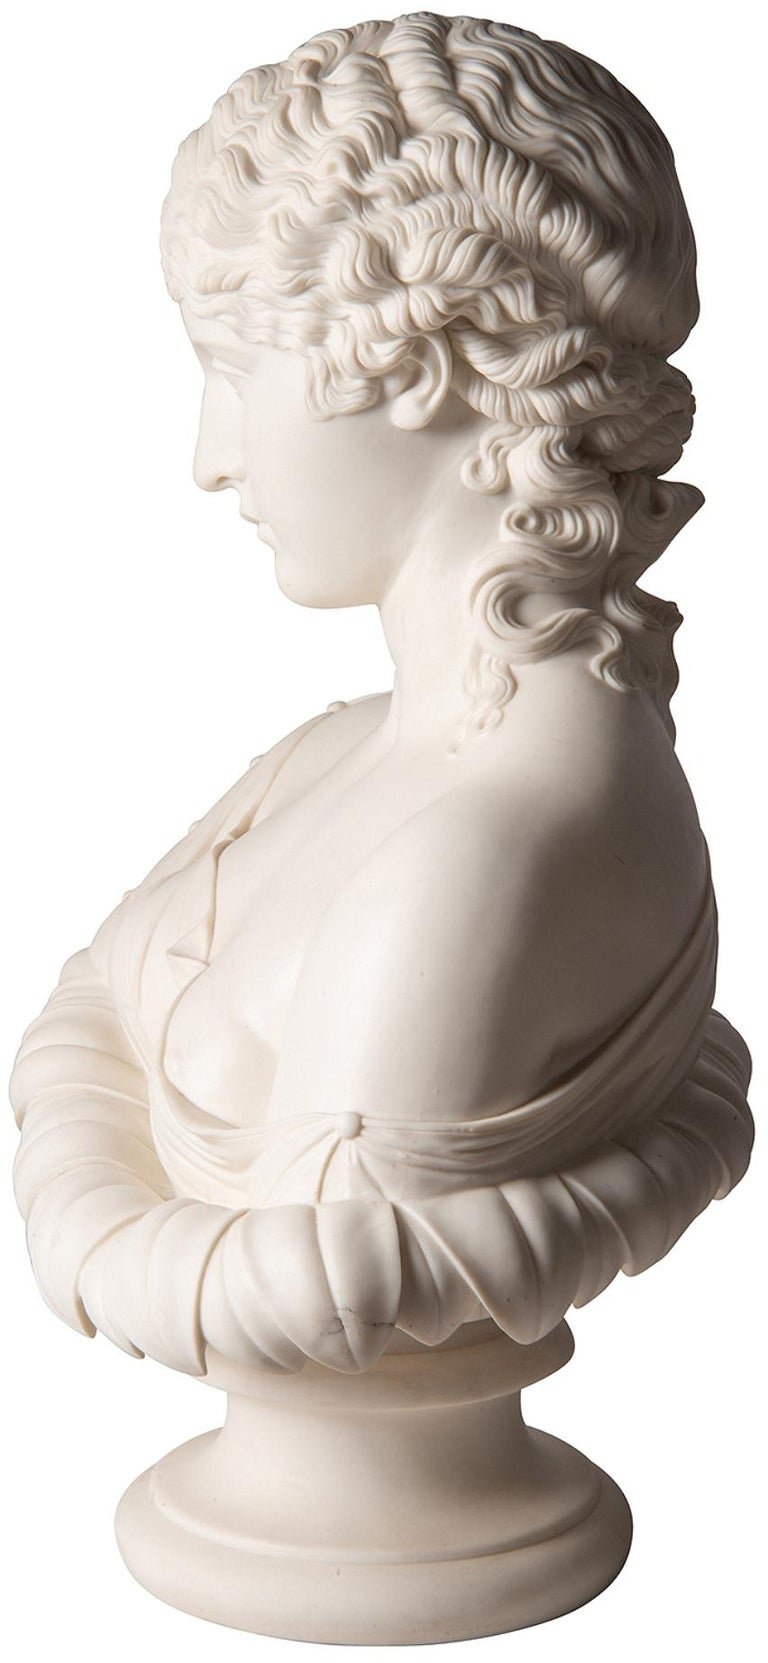 Porcelain 19th Century Neoclassical Female Parian Bust For Sale